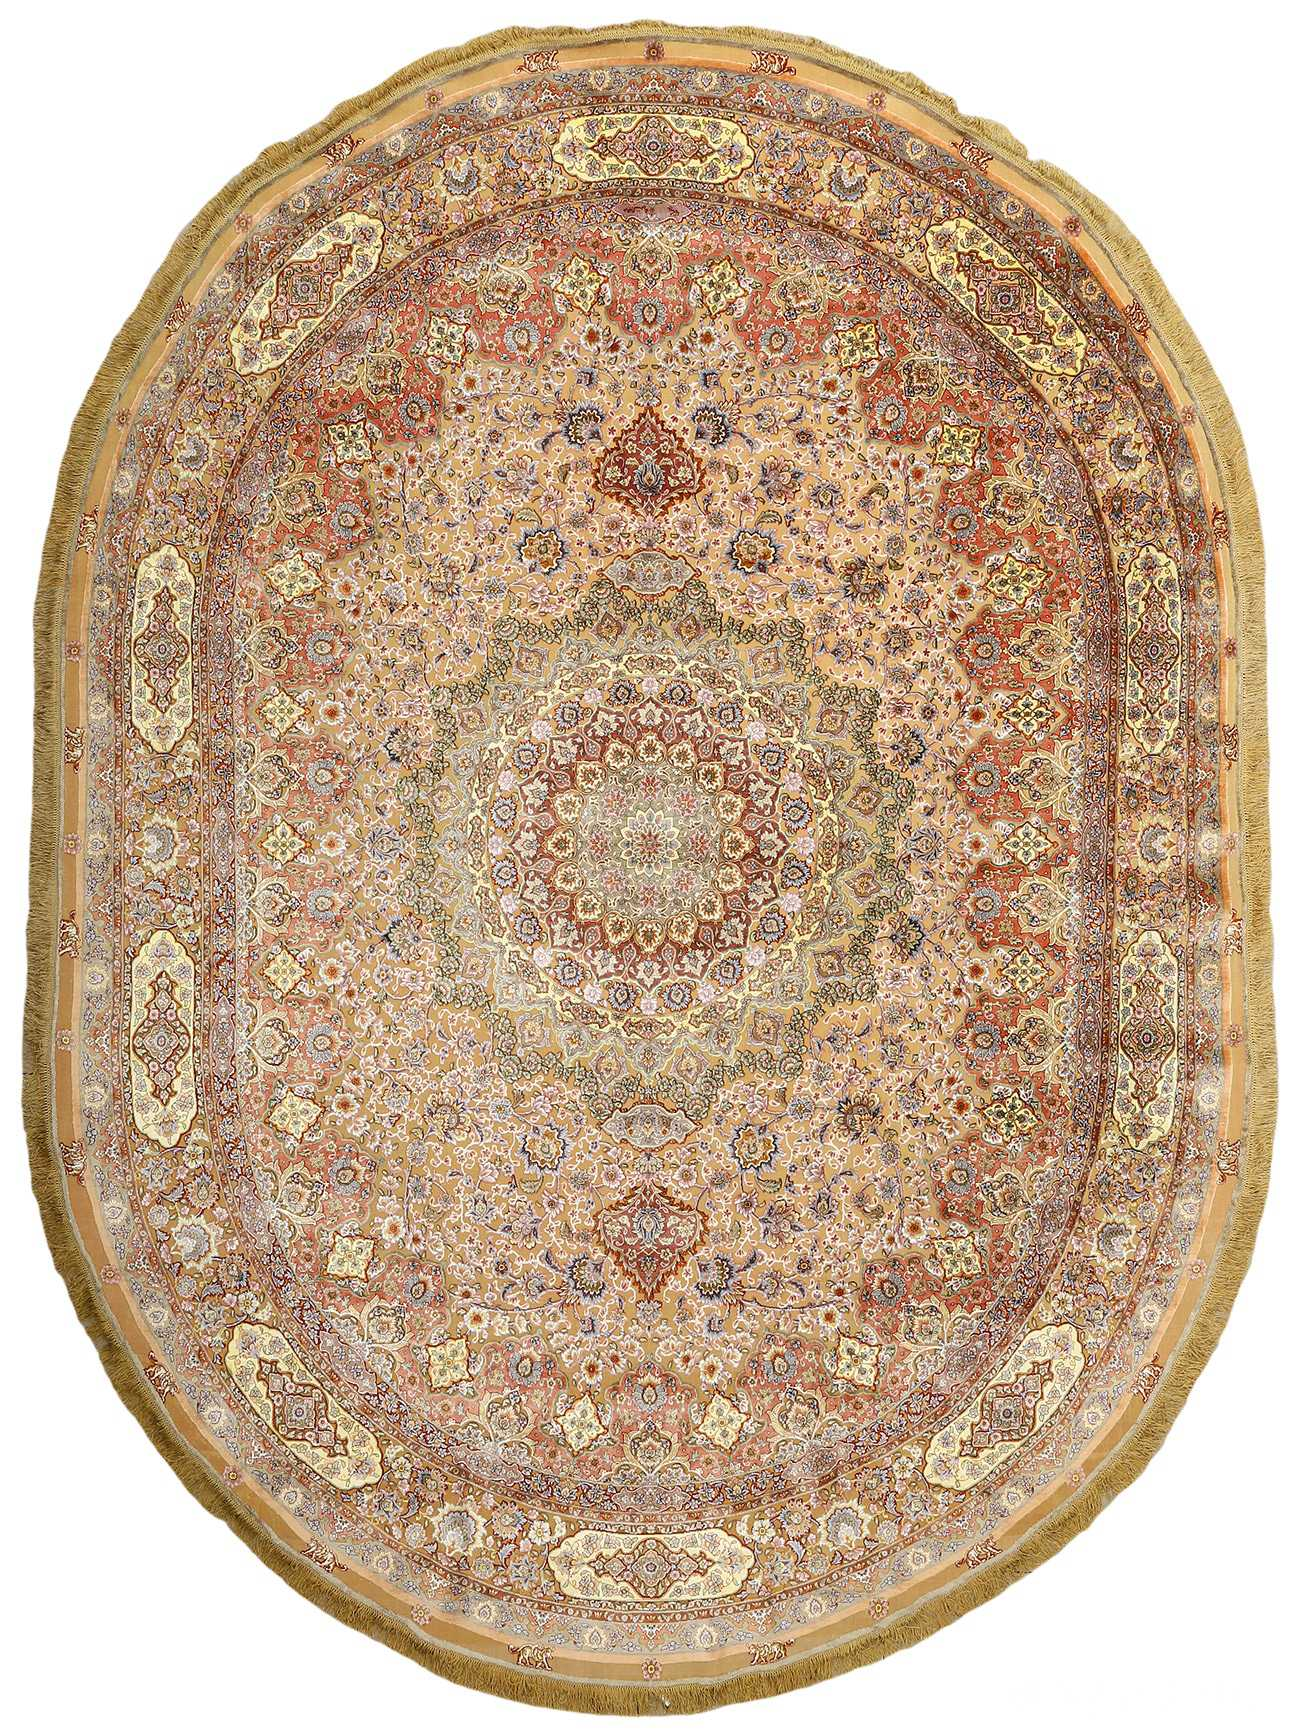 oval silk and gold threading vintage souf tabriz persian rug 51086 Nazmiyal